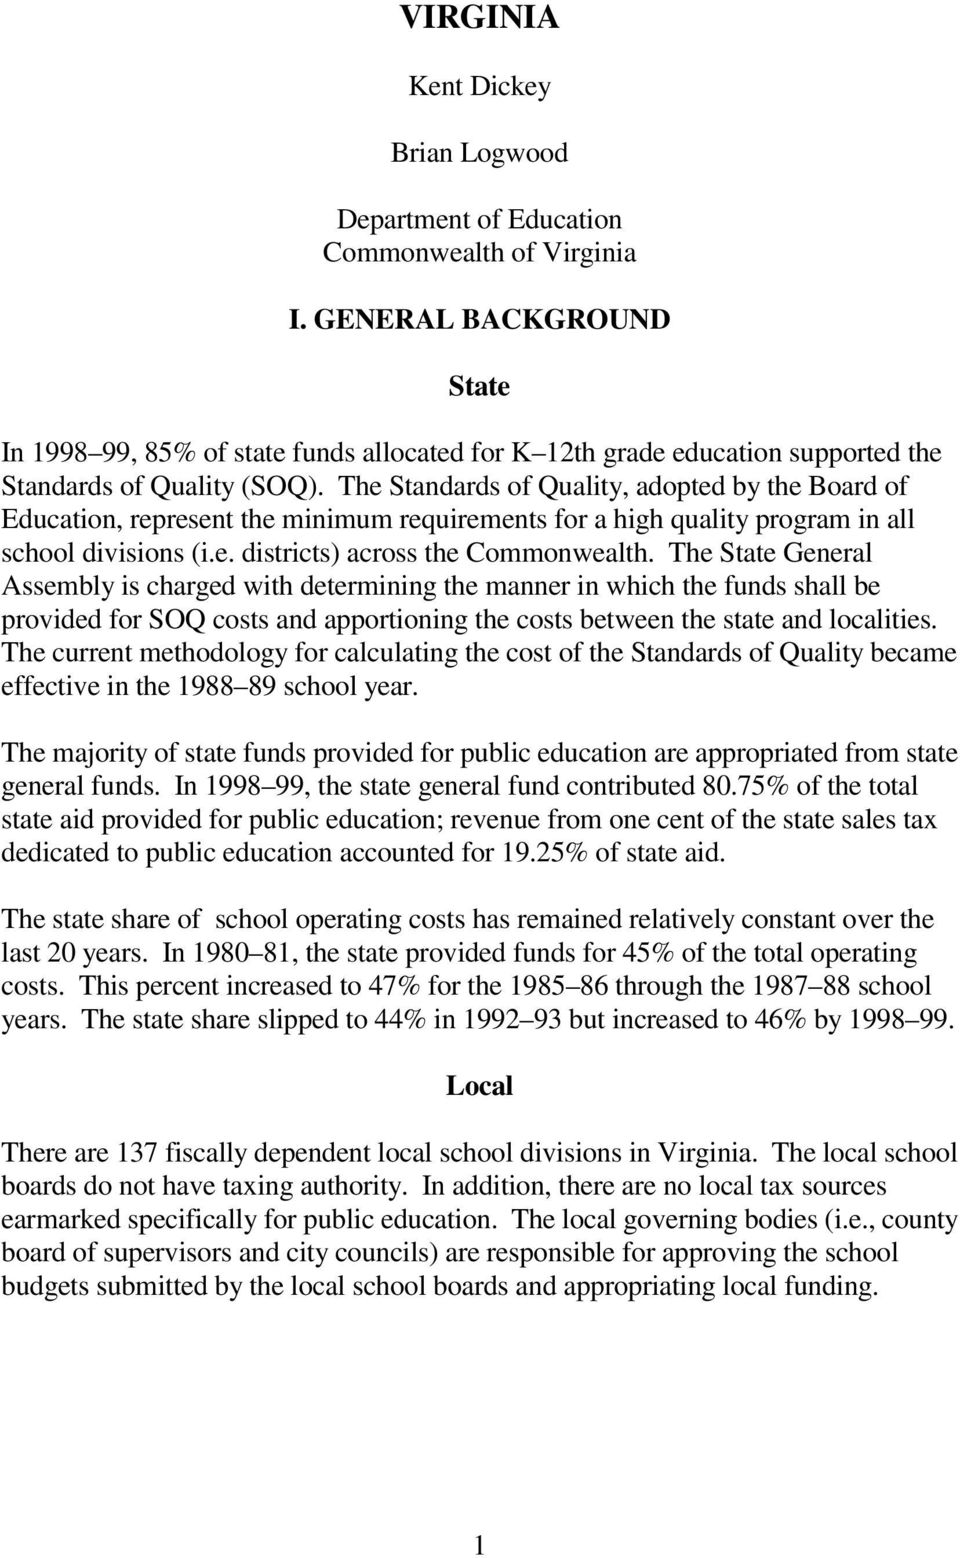 The Standards of Quality, adopted by the Board of Education, represent the minimum requirements for a high quality program in all school divisions (i.e. districts) across the Commonwealth.